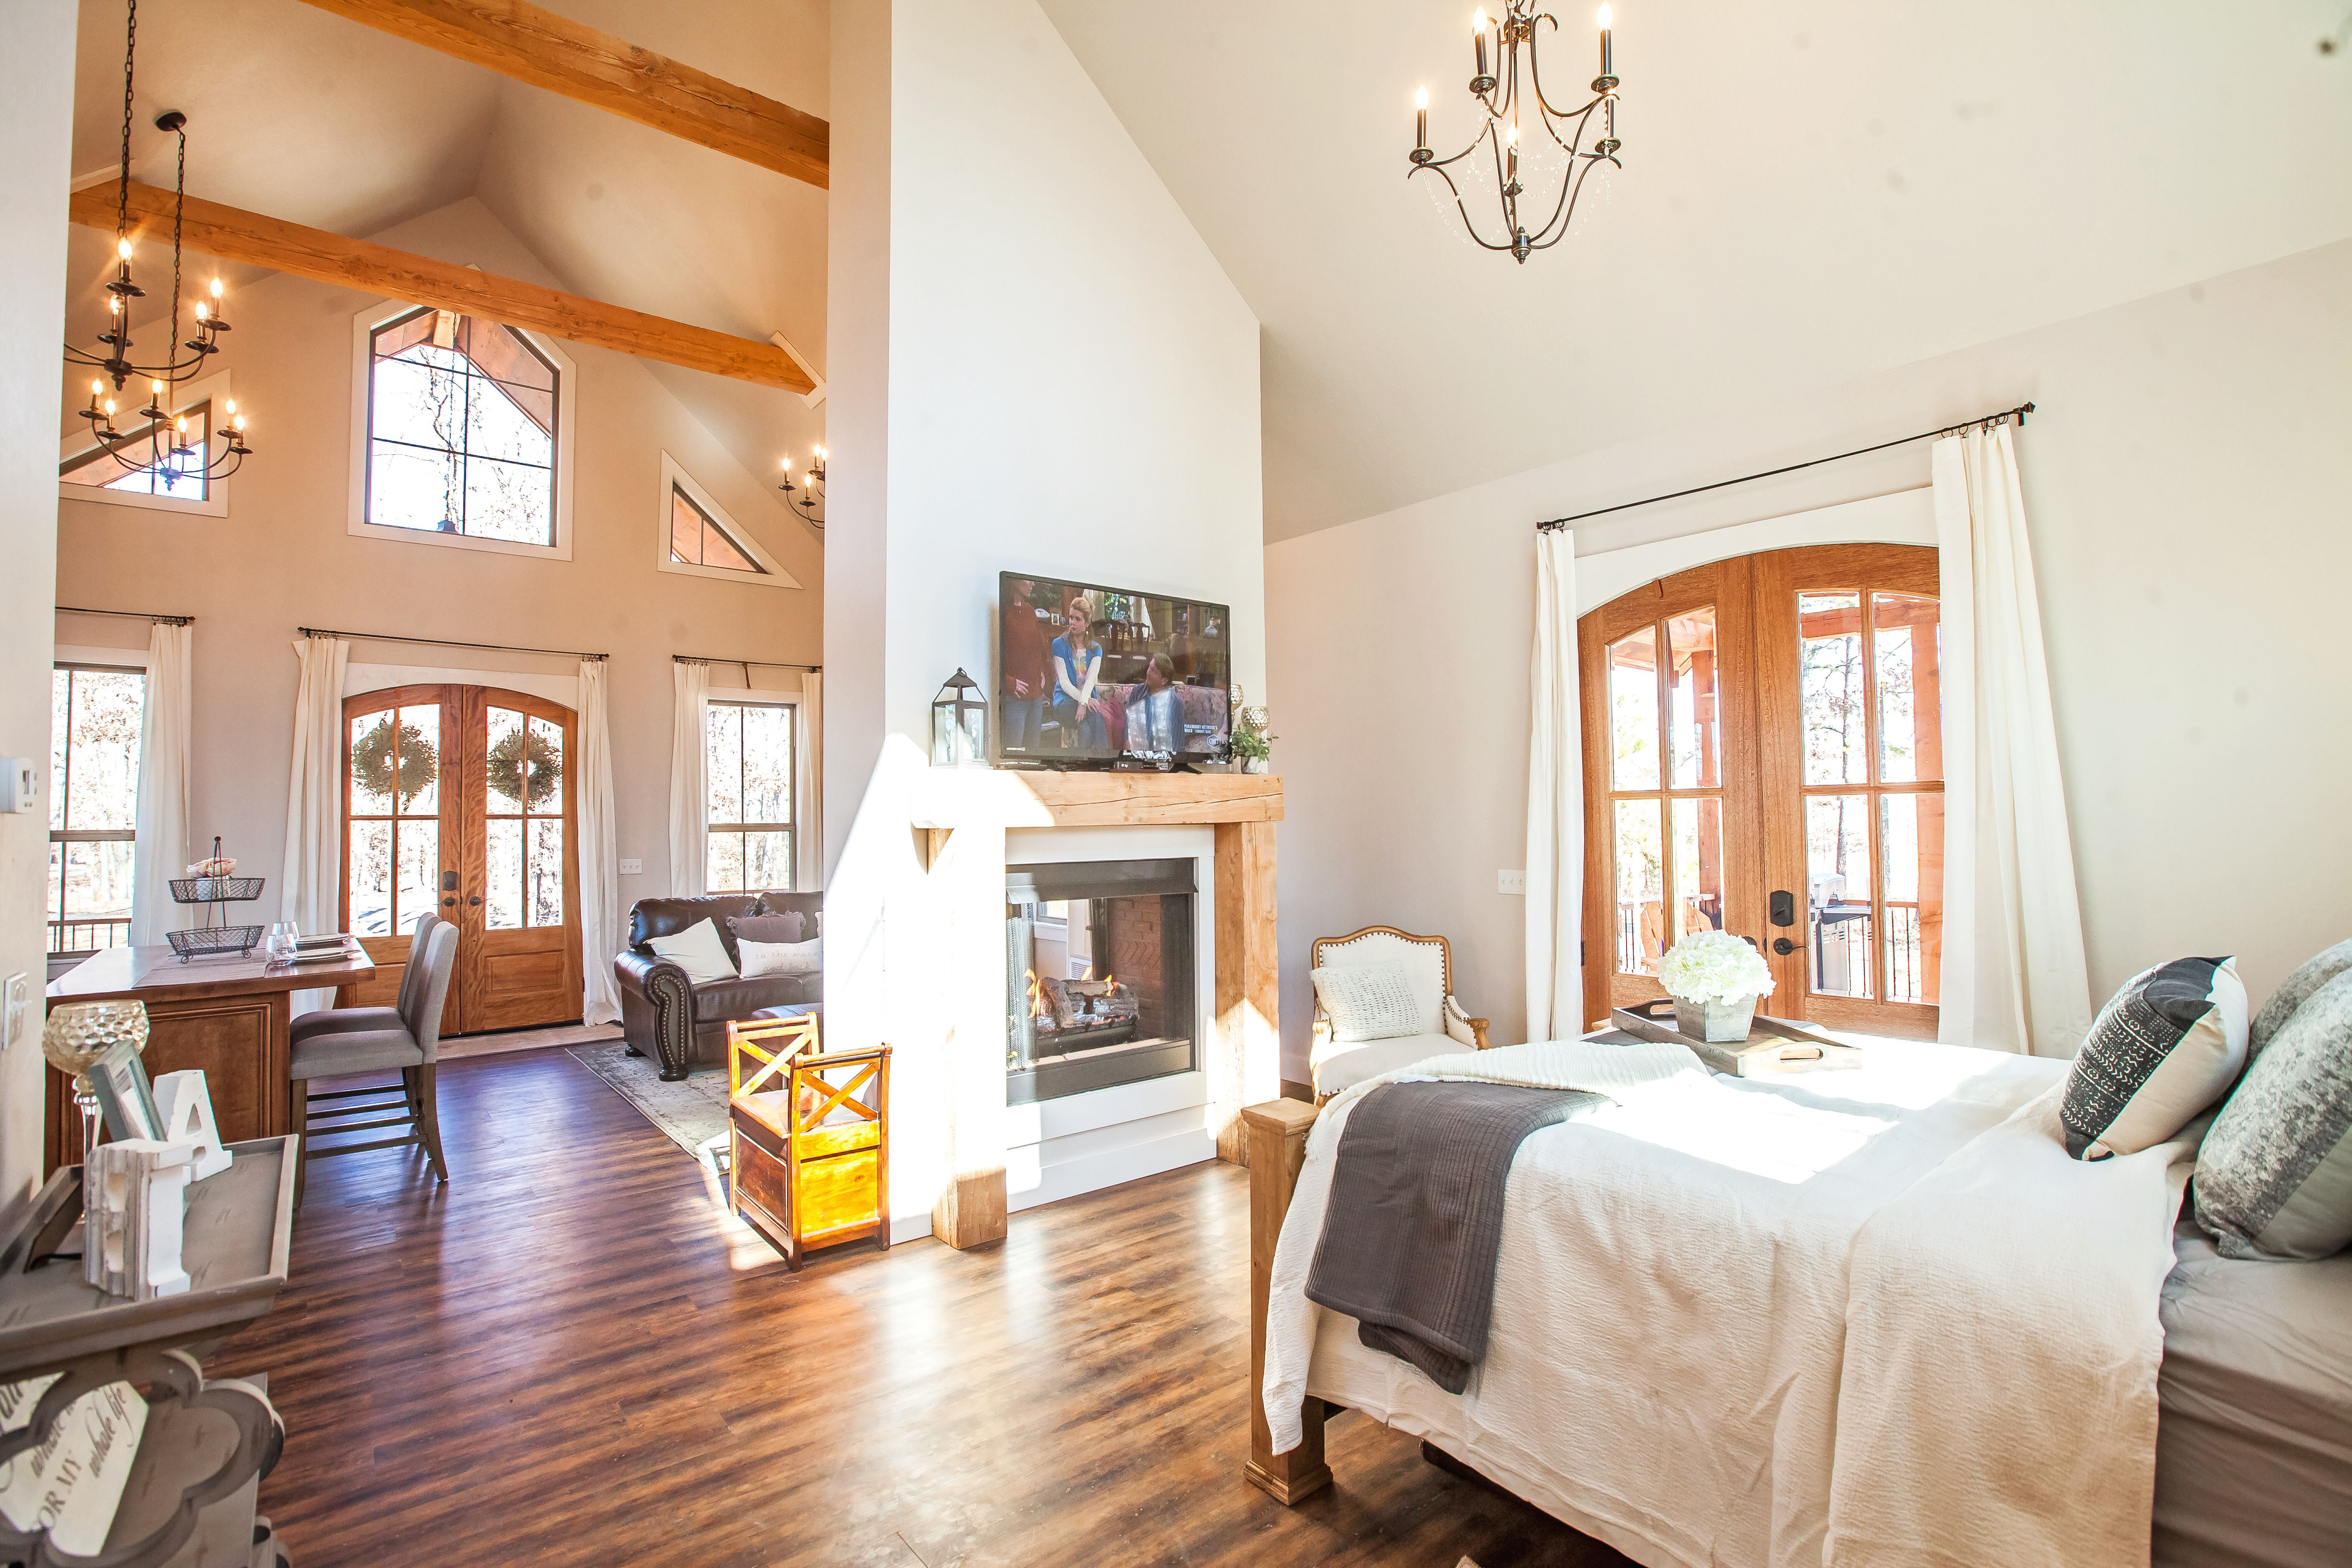 New Studio Cabin In Southeastern Oklahoma Perfect For A Romantic Getaway For Two Most Comfortable Bed Romantic Cabin Remodeling Inspiration